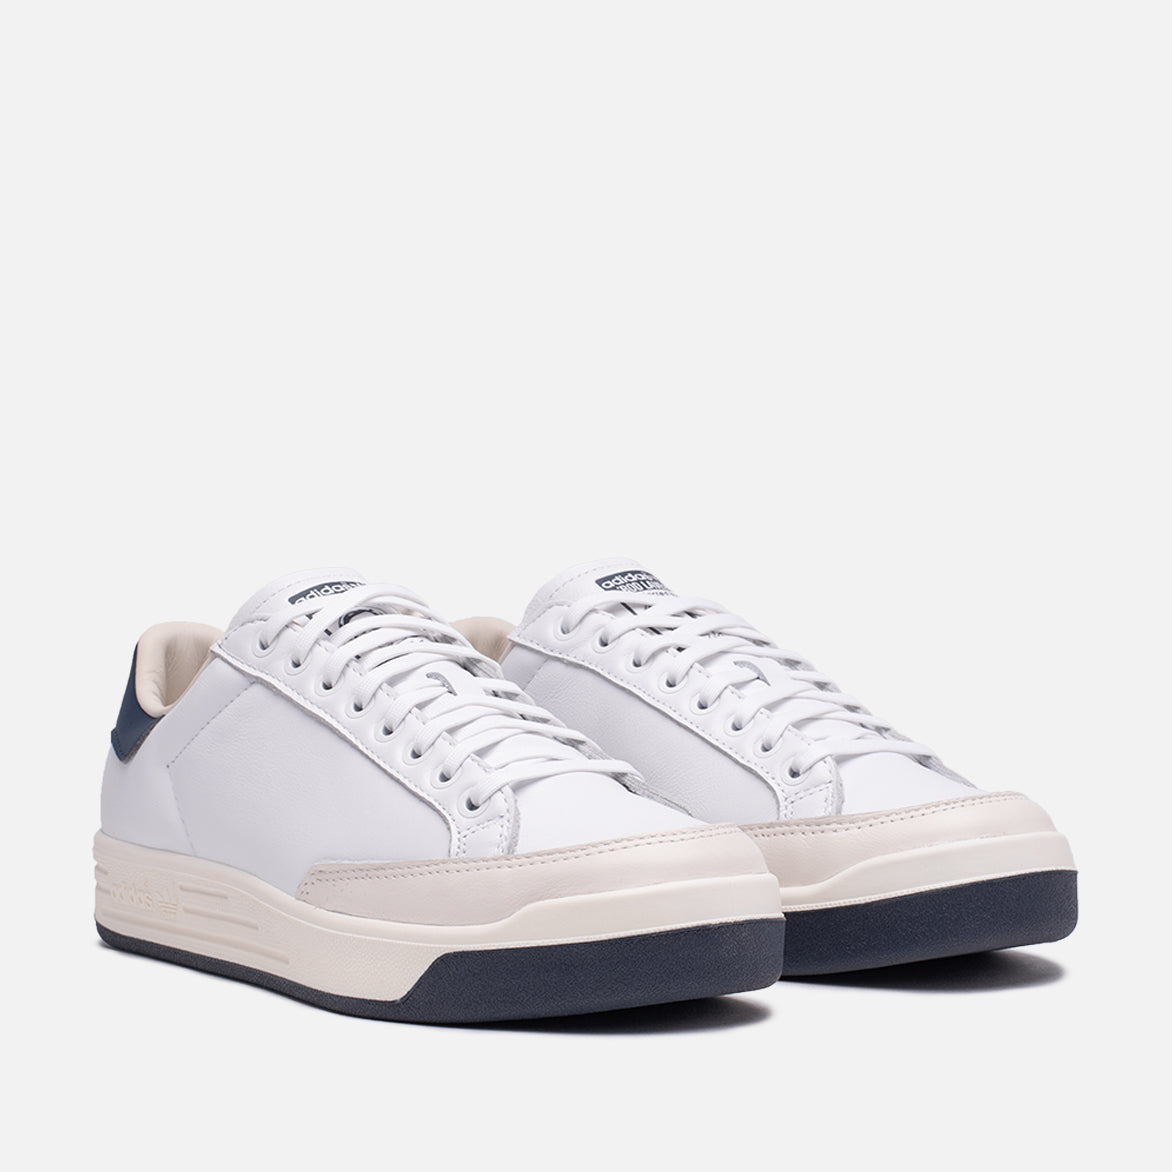 ROD LAVER LEATHER - CLOUD WHITE / COLLEGIATE NAVY